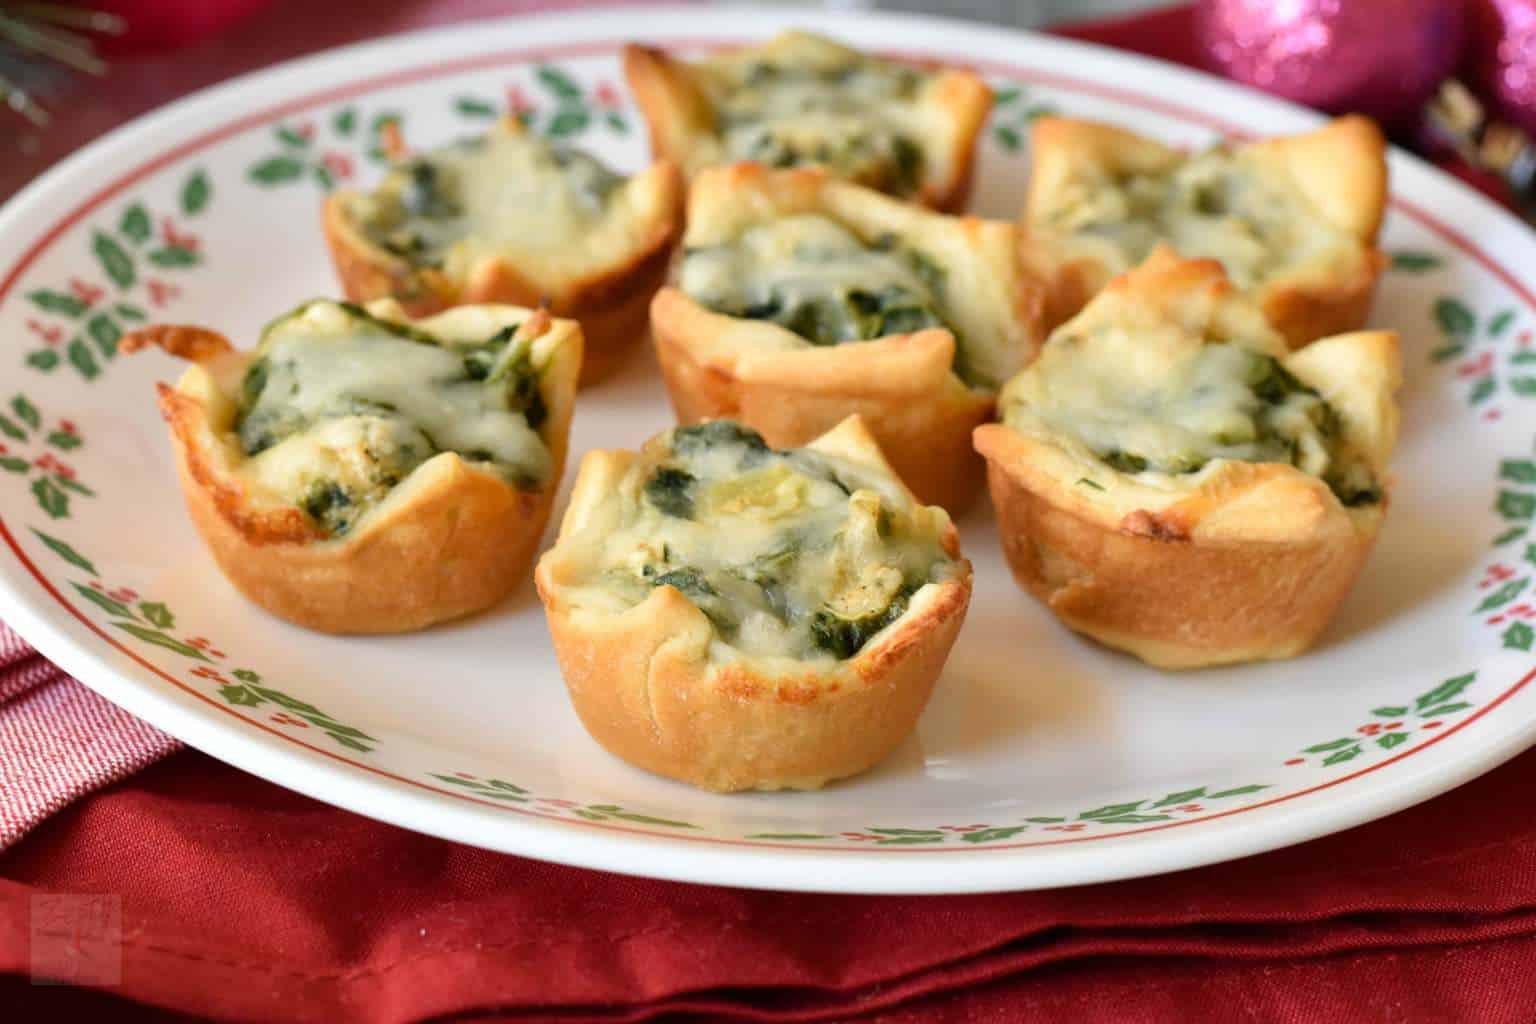 Spiced Artichoke spinach cups